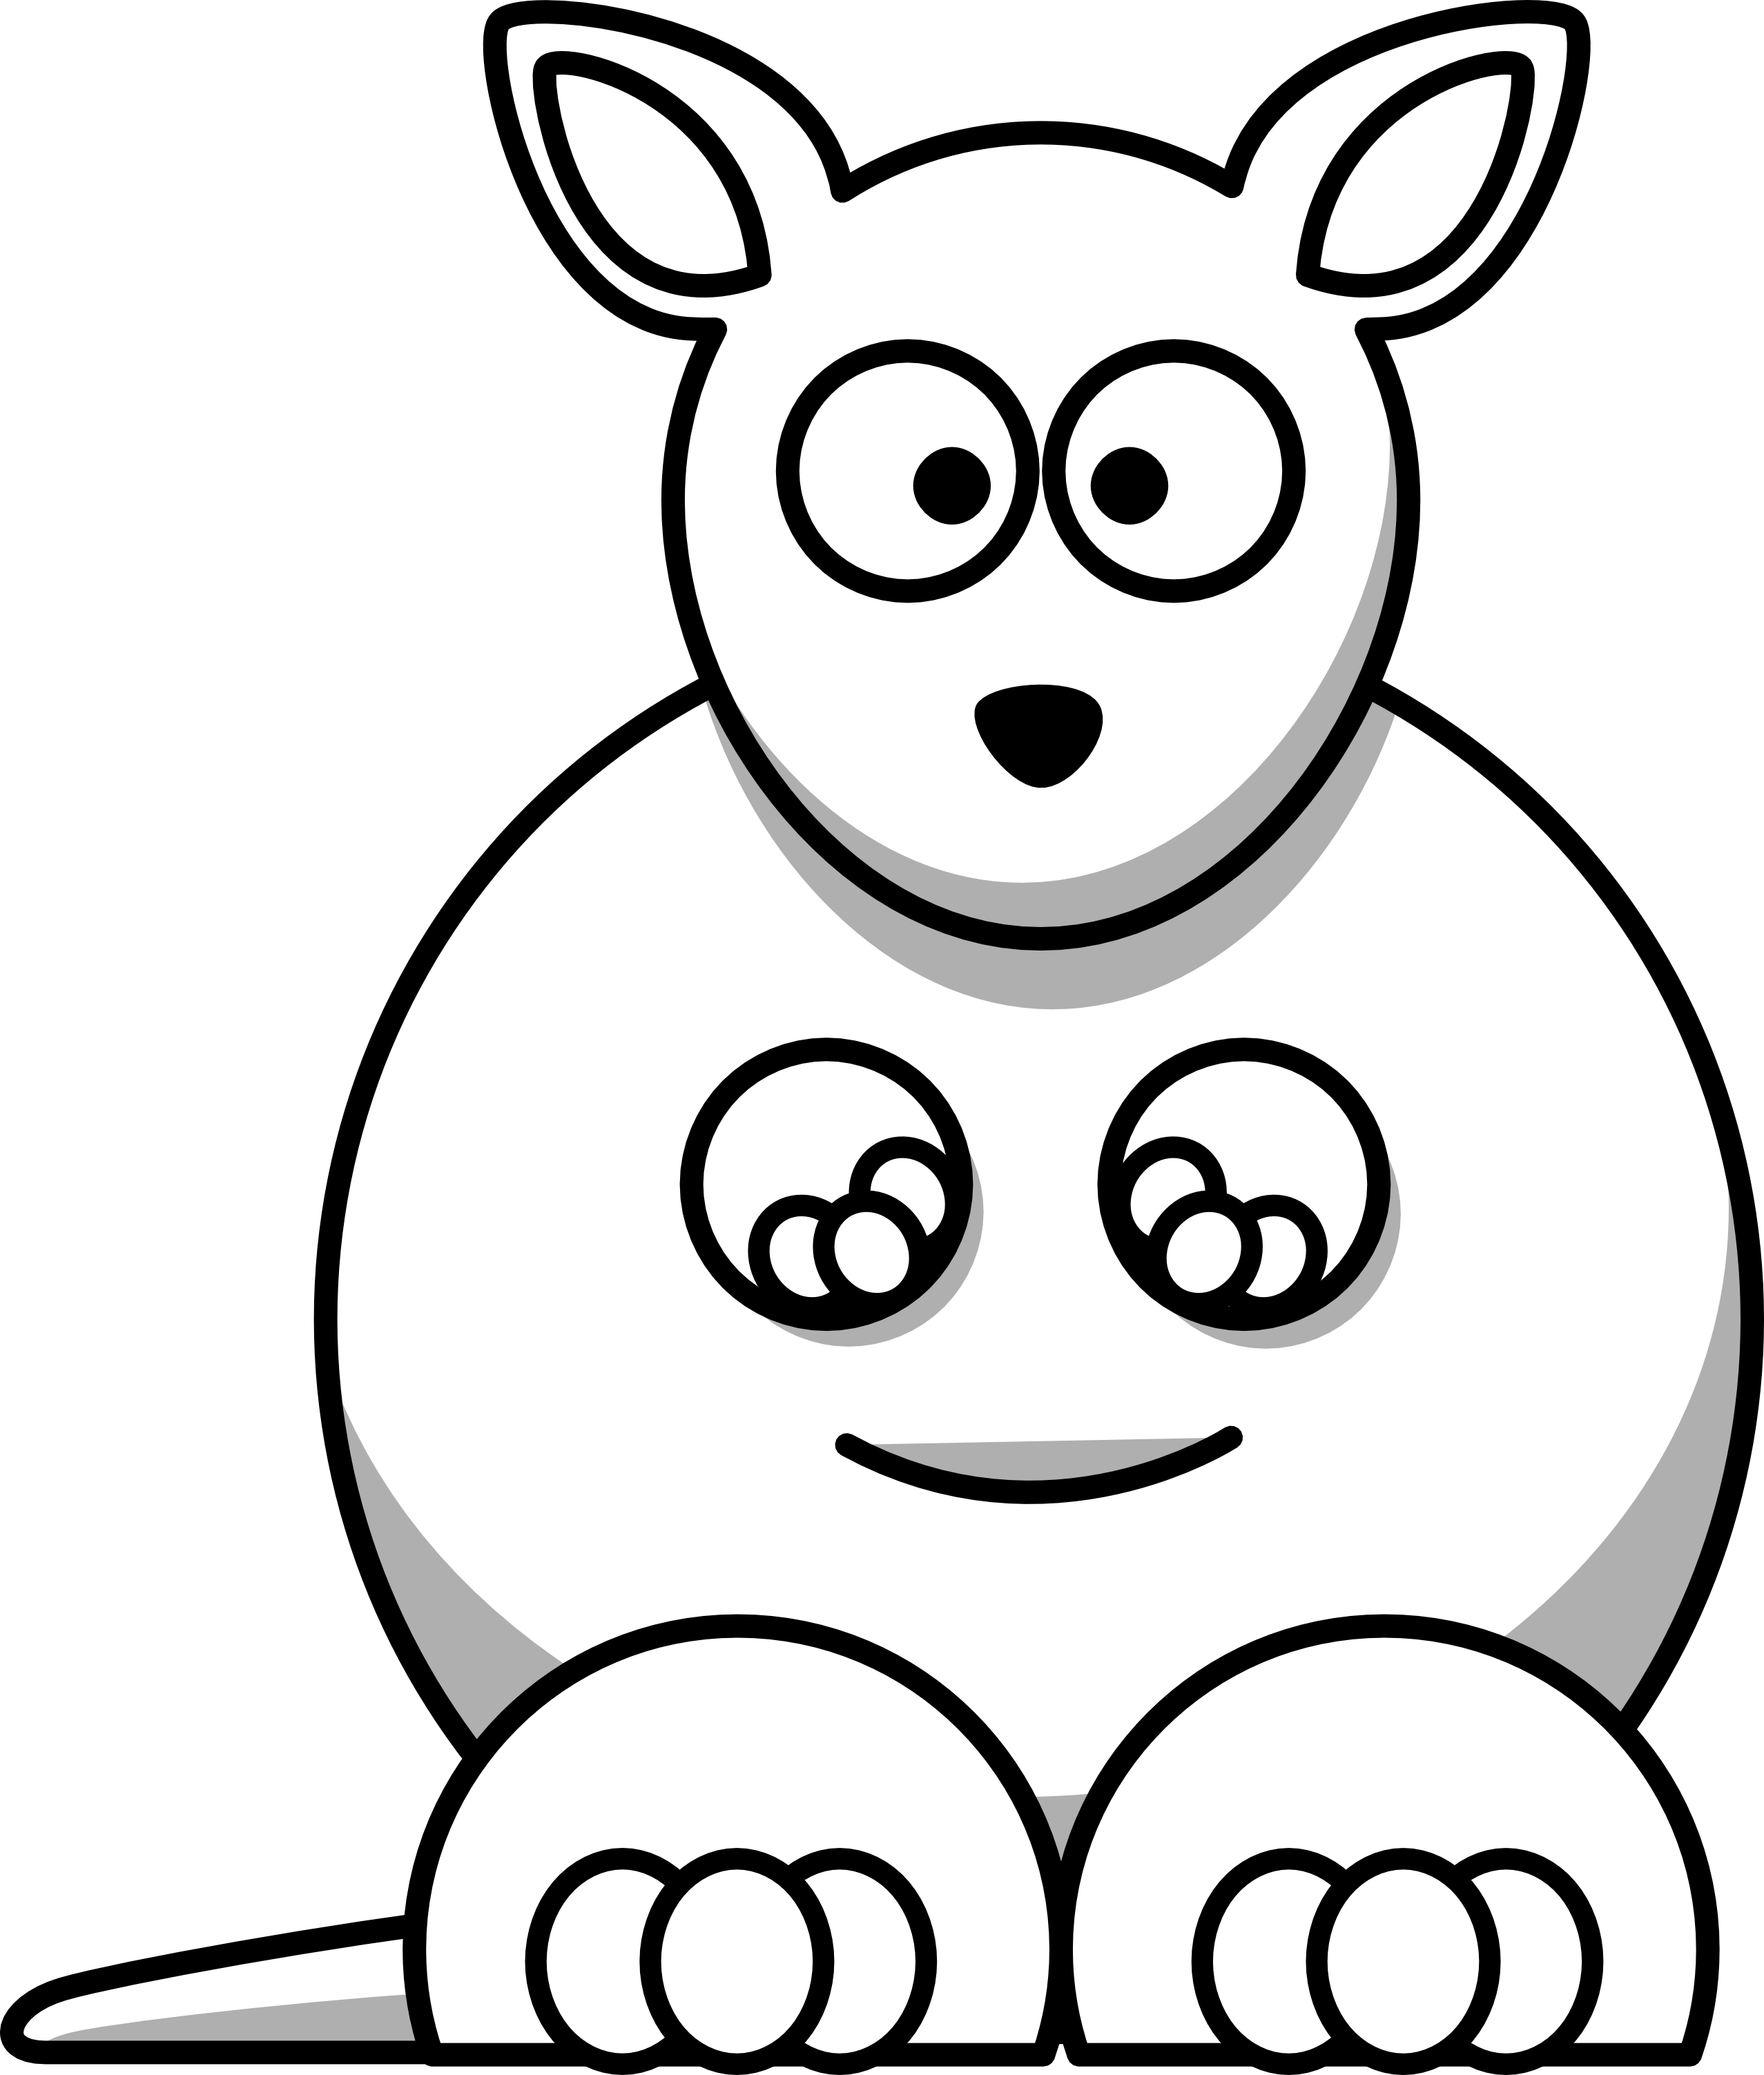 Zoo animal faces clipart black and white vector freeuse library Free Black And White Cartoon Animals, Download Free Clip Art ... vector freeuse library